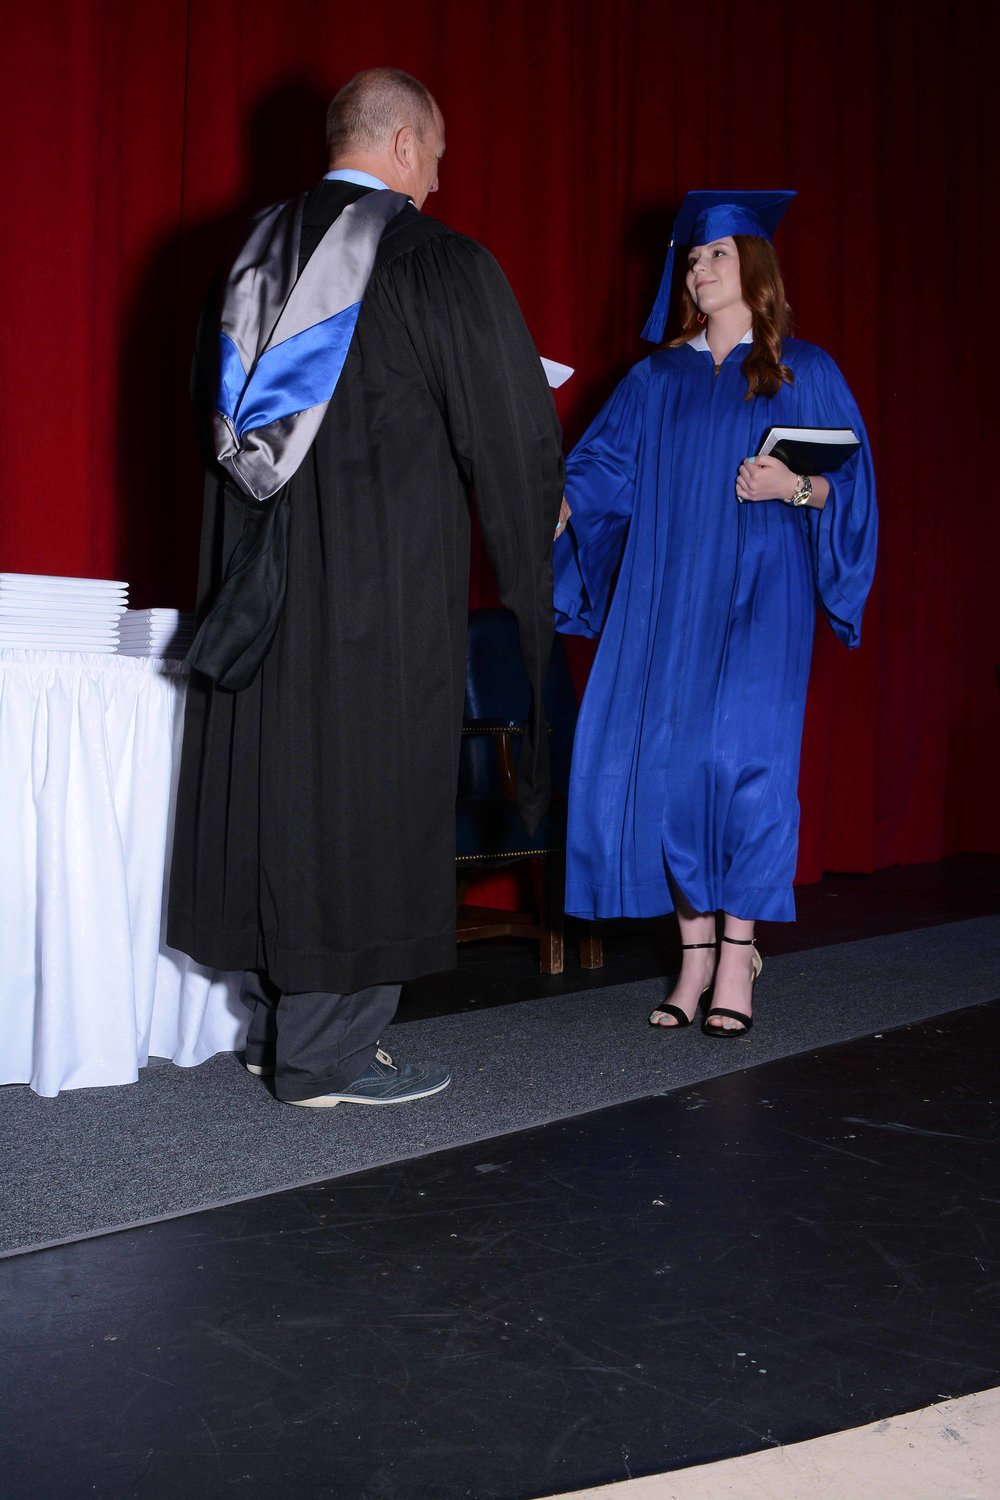 May14 Commencement110.jpg